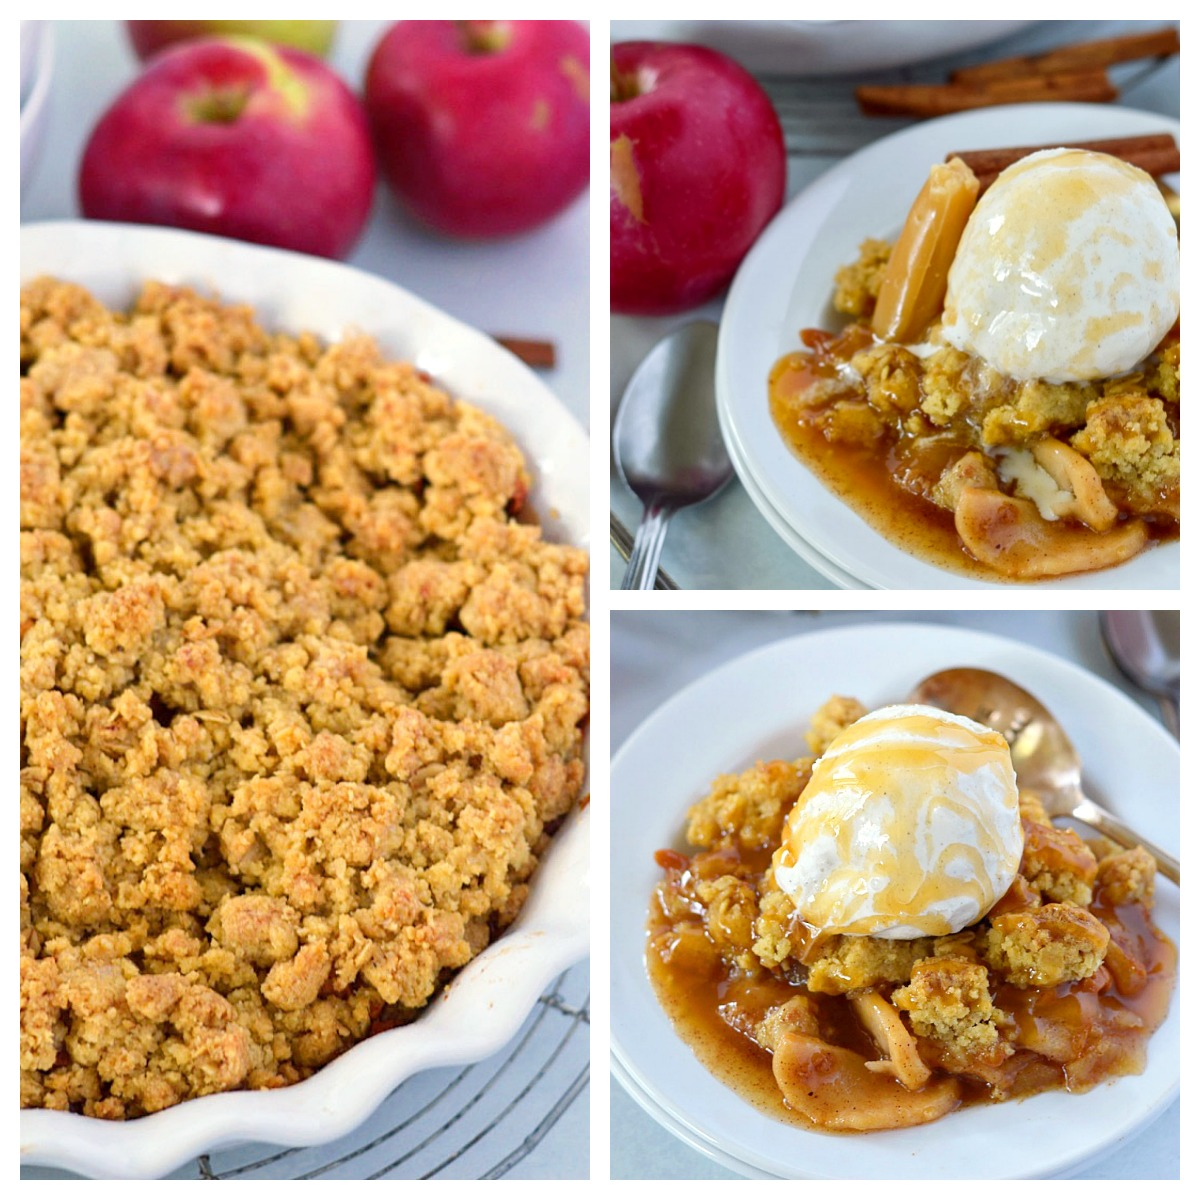 This Caramel Apple Crisp is sure to be your new favorite fall dessert recipe!